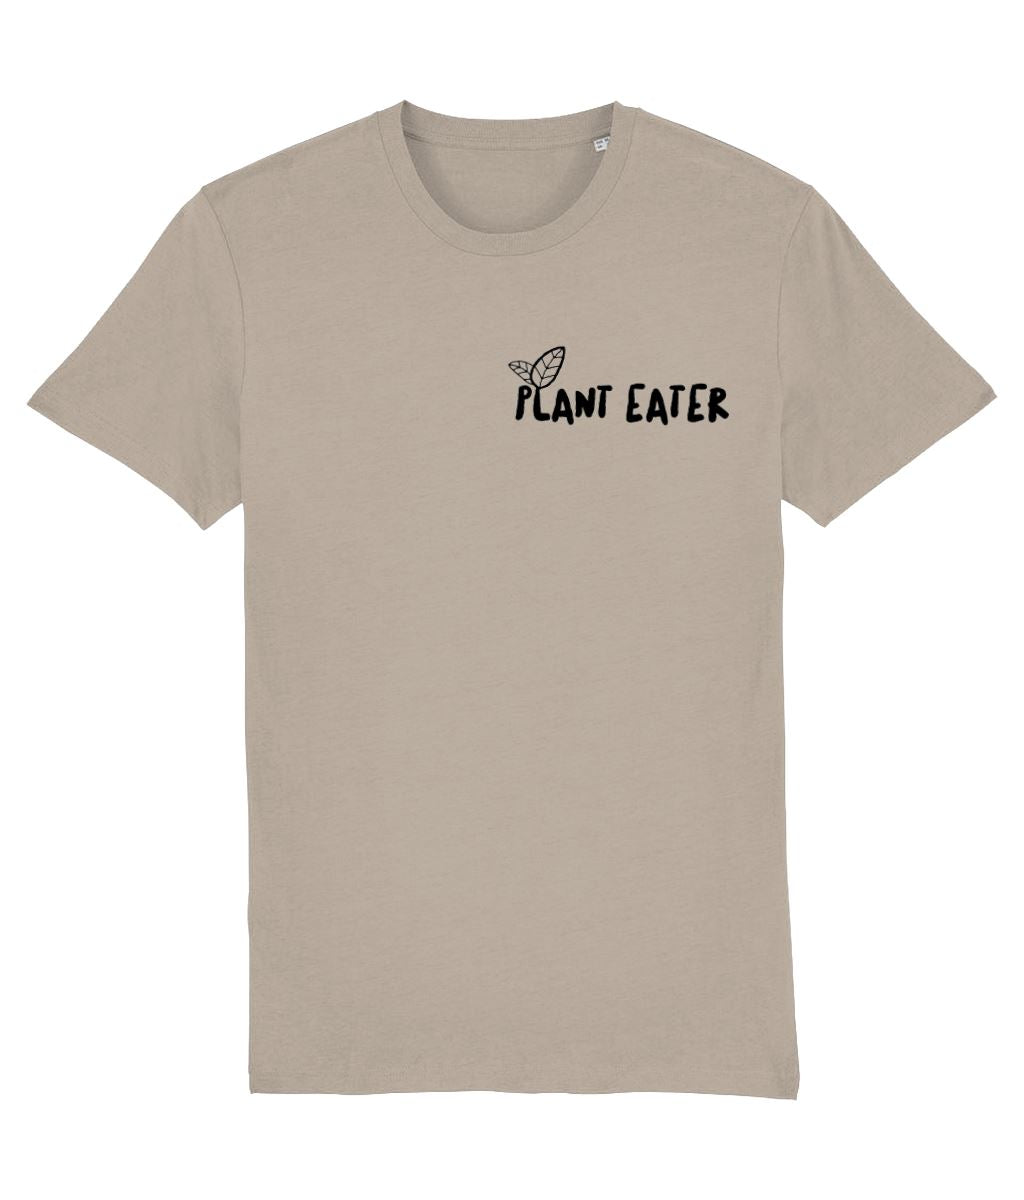 """Plant Eater"" Vegan T-Shirt - 100% Organic Cotton (Unisex) Clothing Vegan Original Desert Dust X-Small"